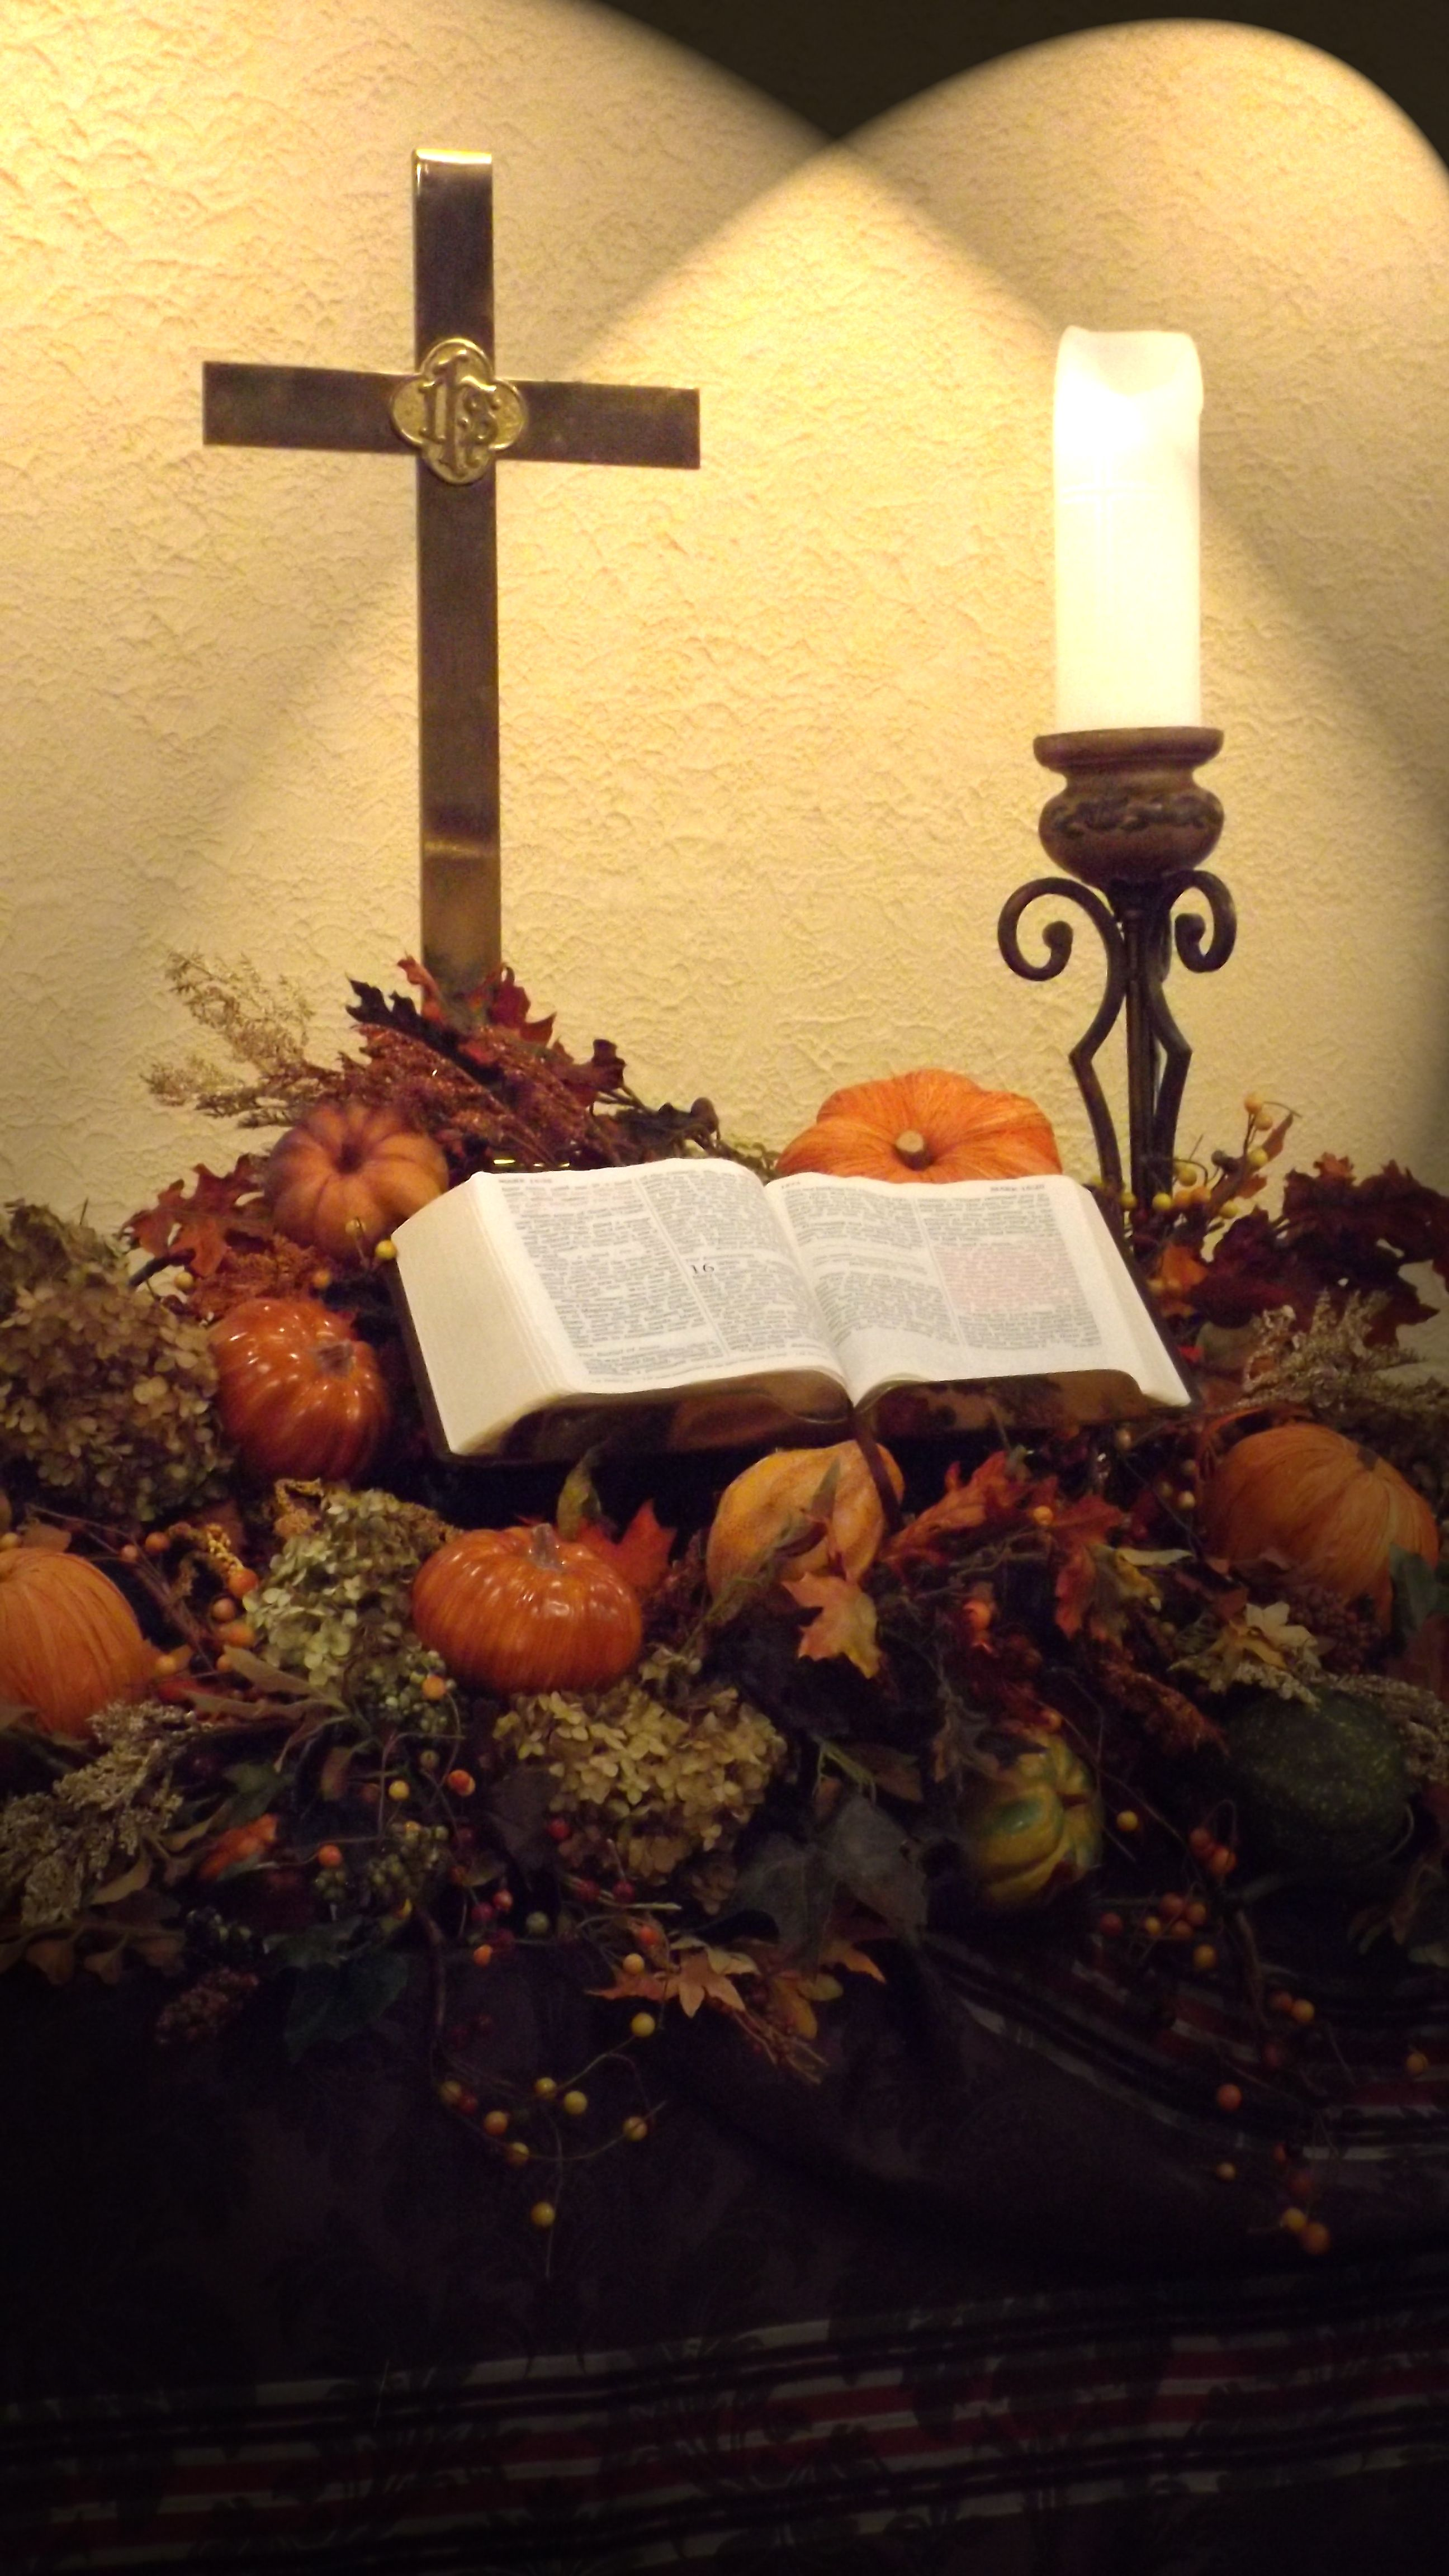 Christmas festival ideas for church - Thanksgiving Altar For With Fall Decorations By Party With Pizzazz